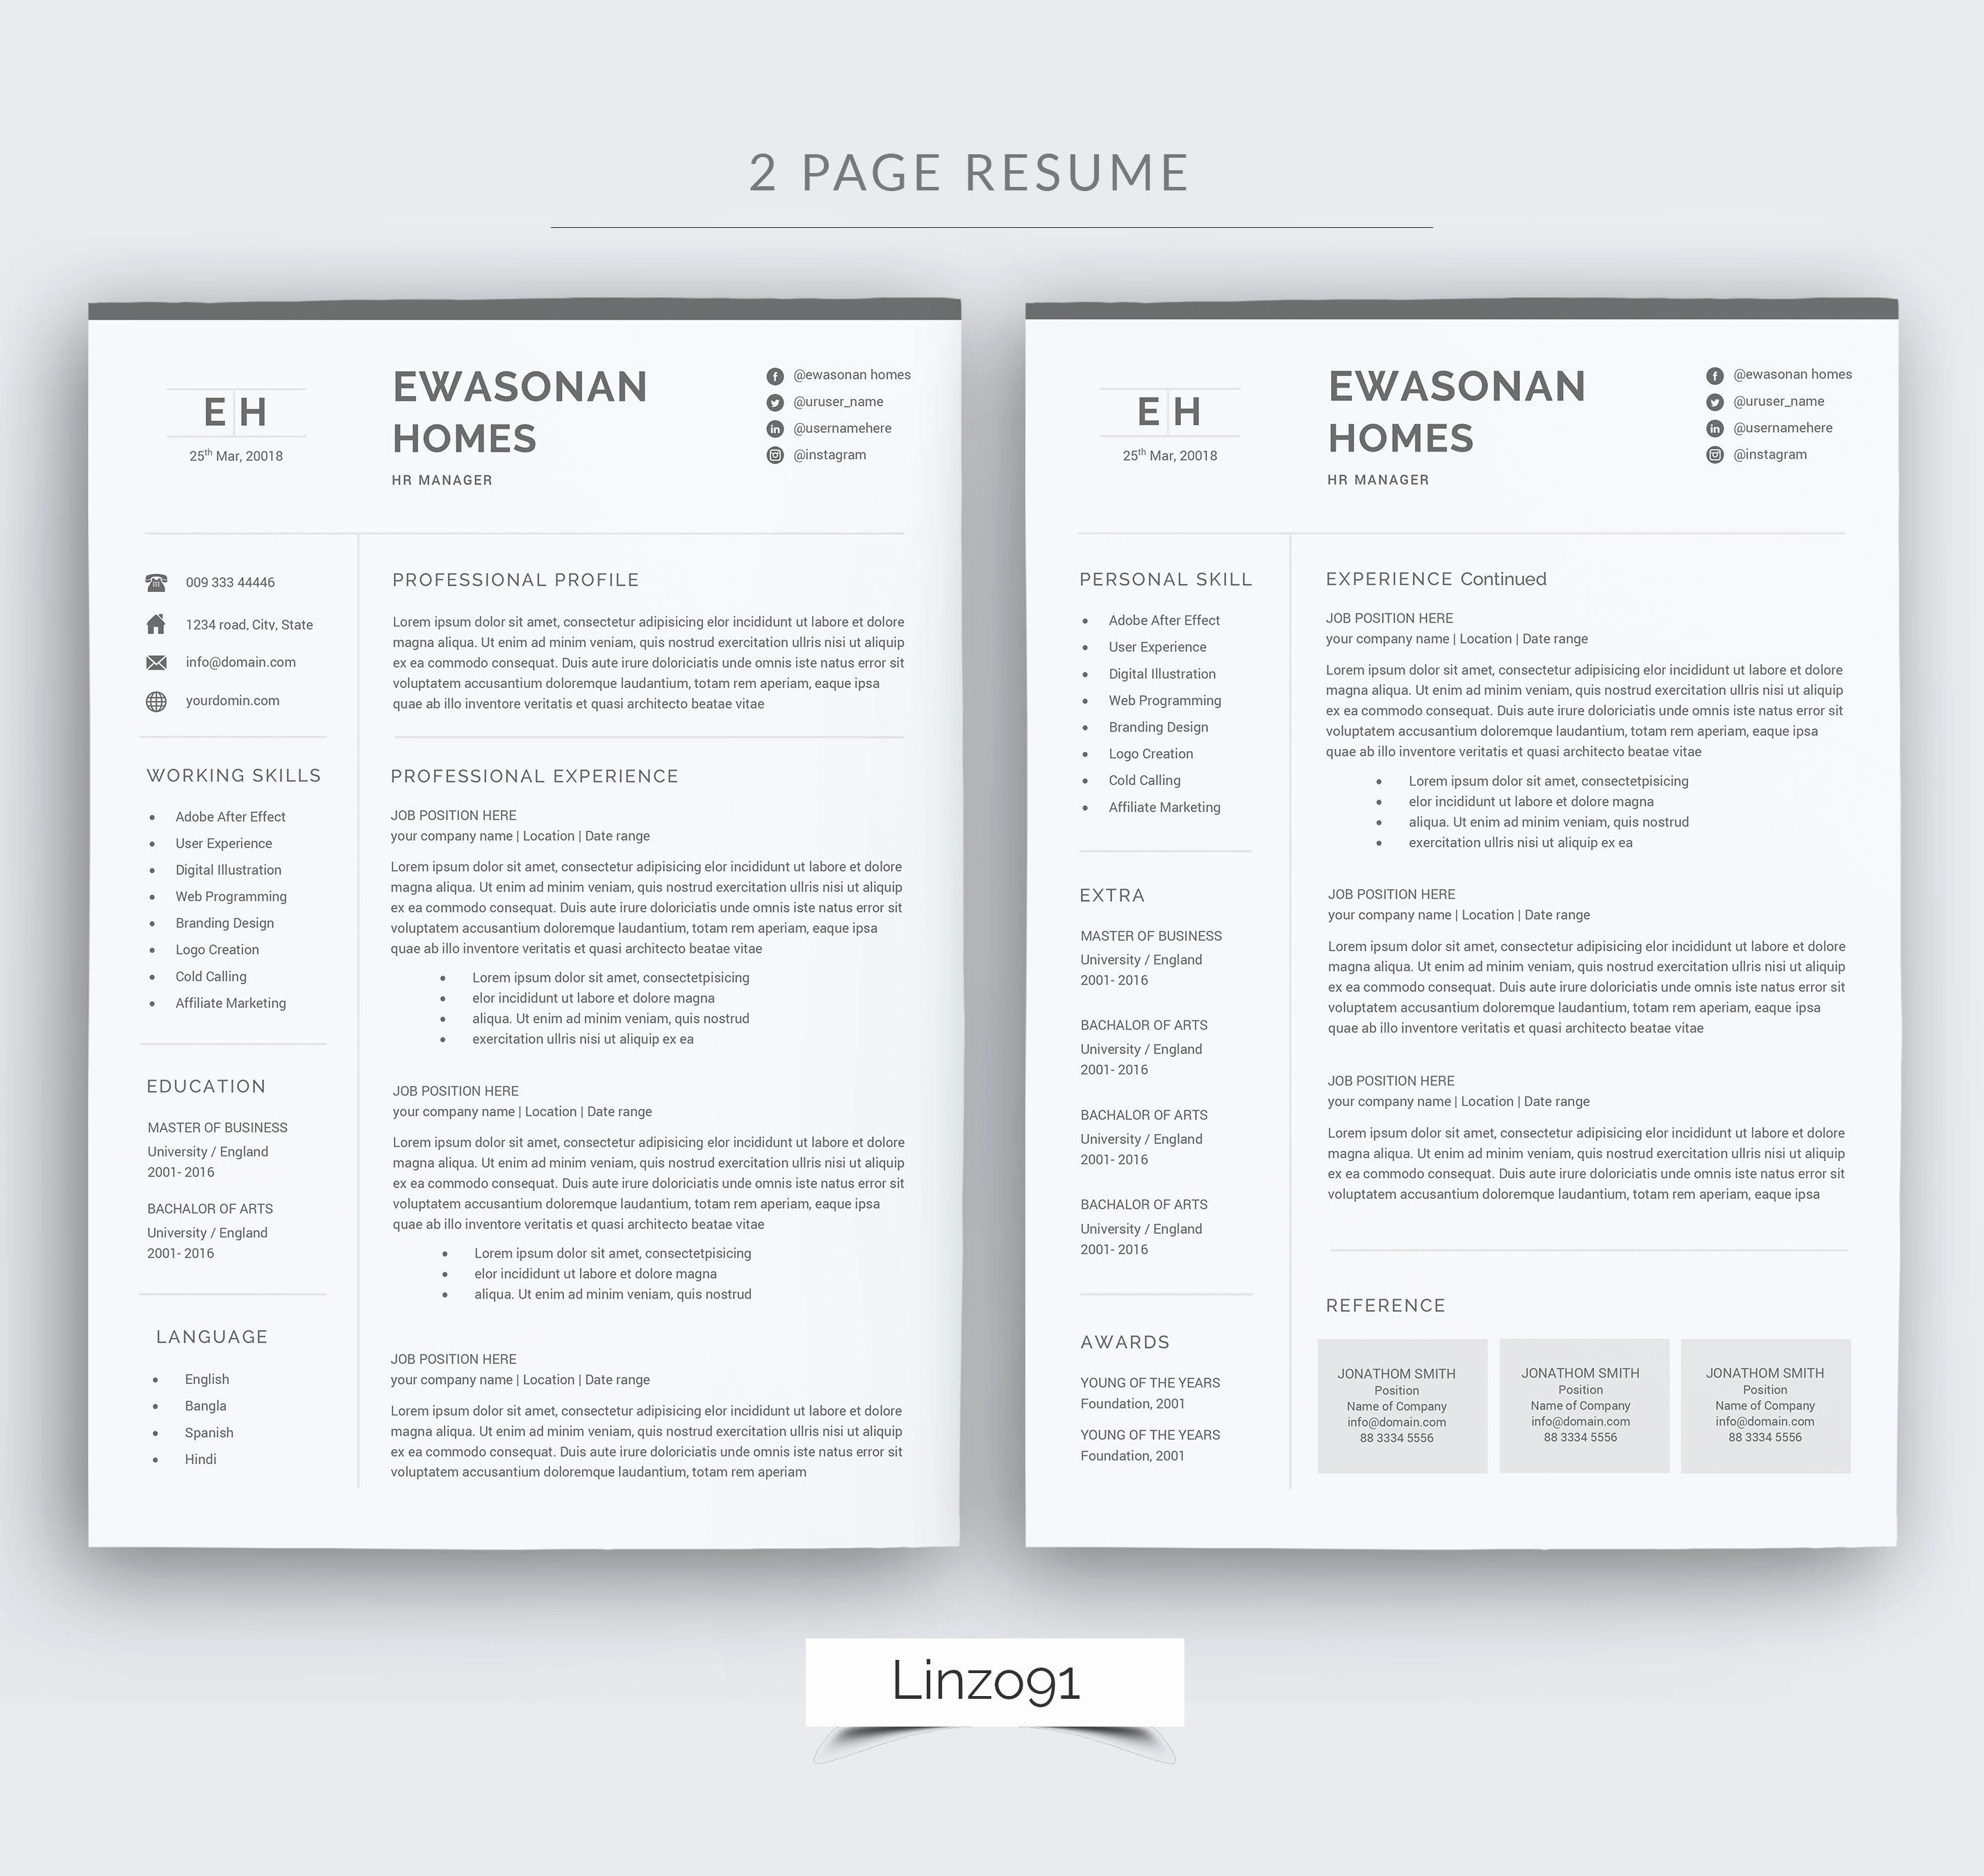 2 Page Resume format Inspirational Minimal Resume 3 Pages